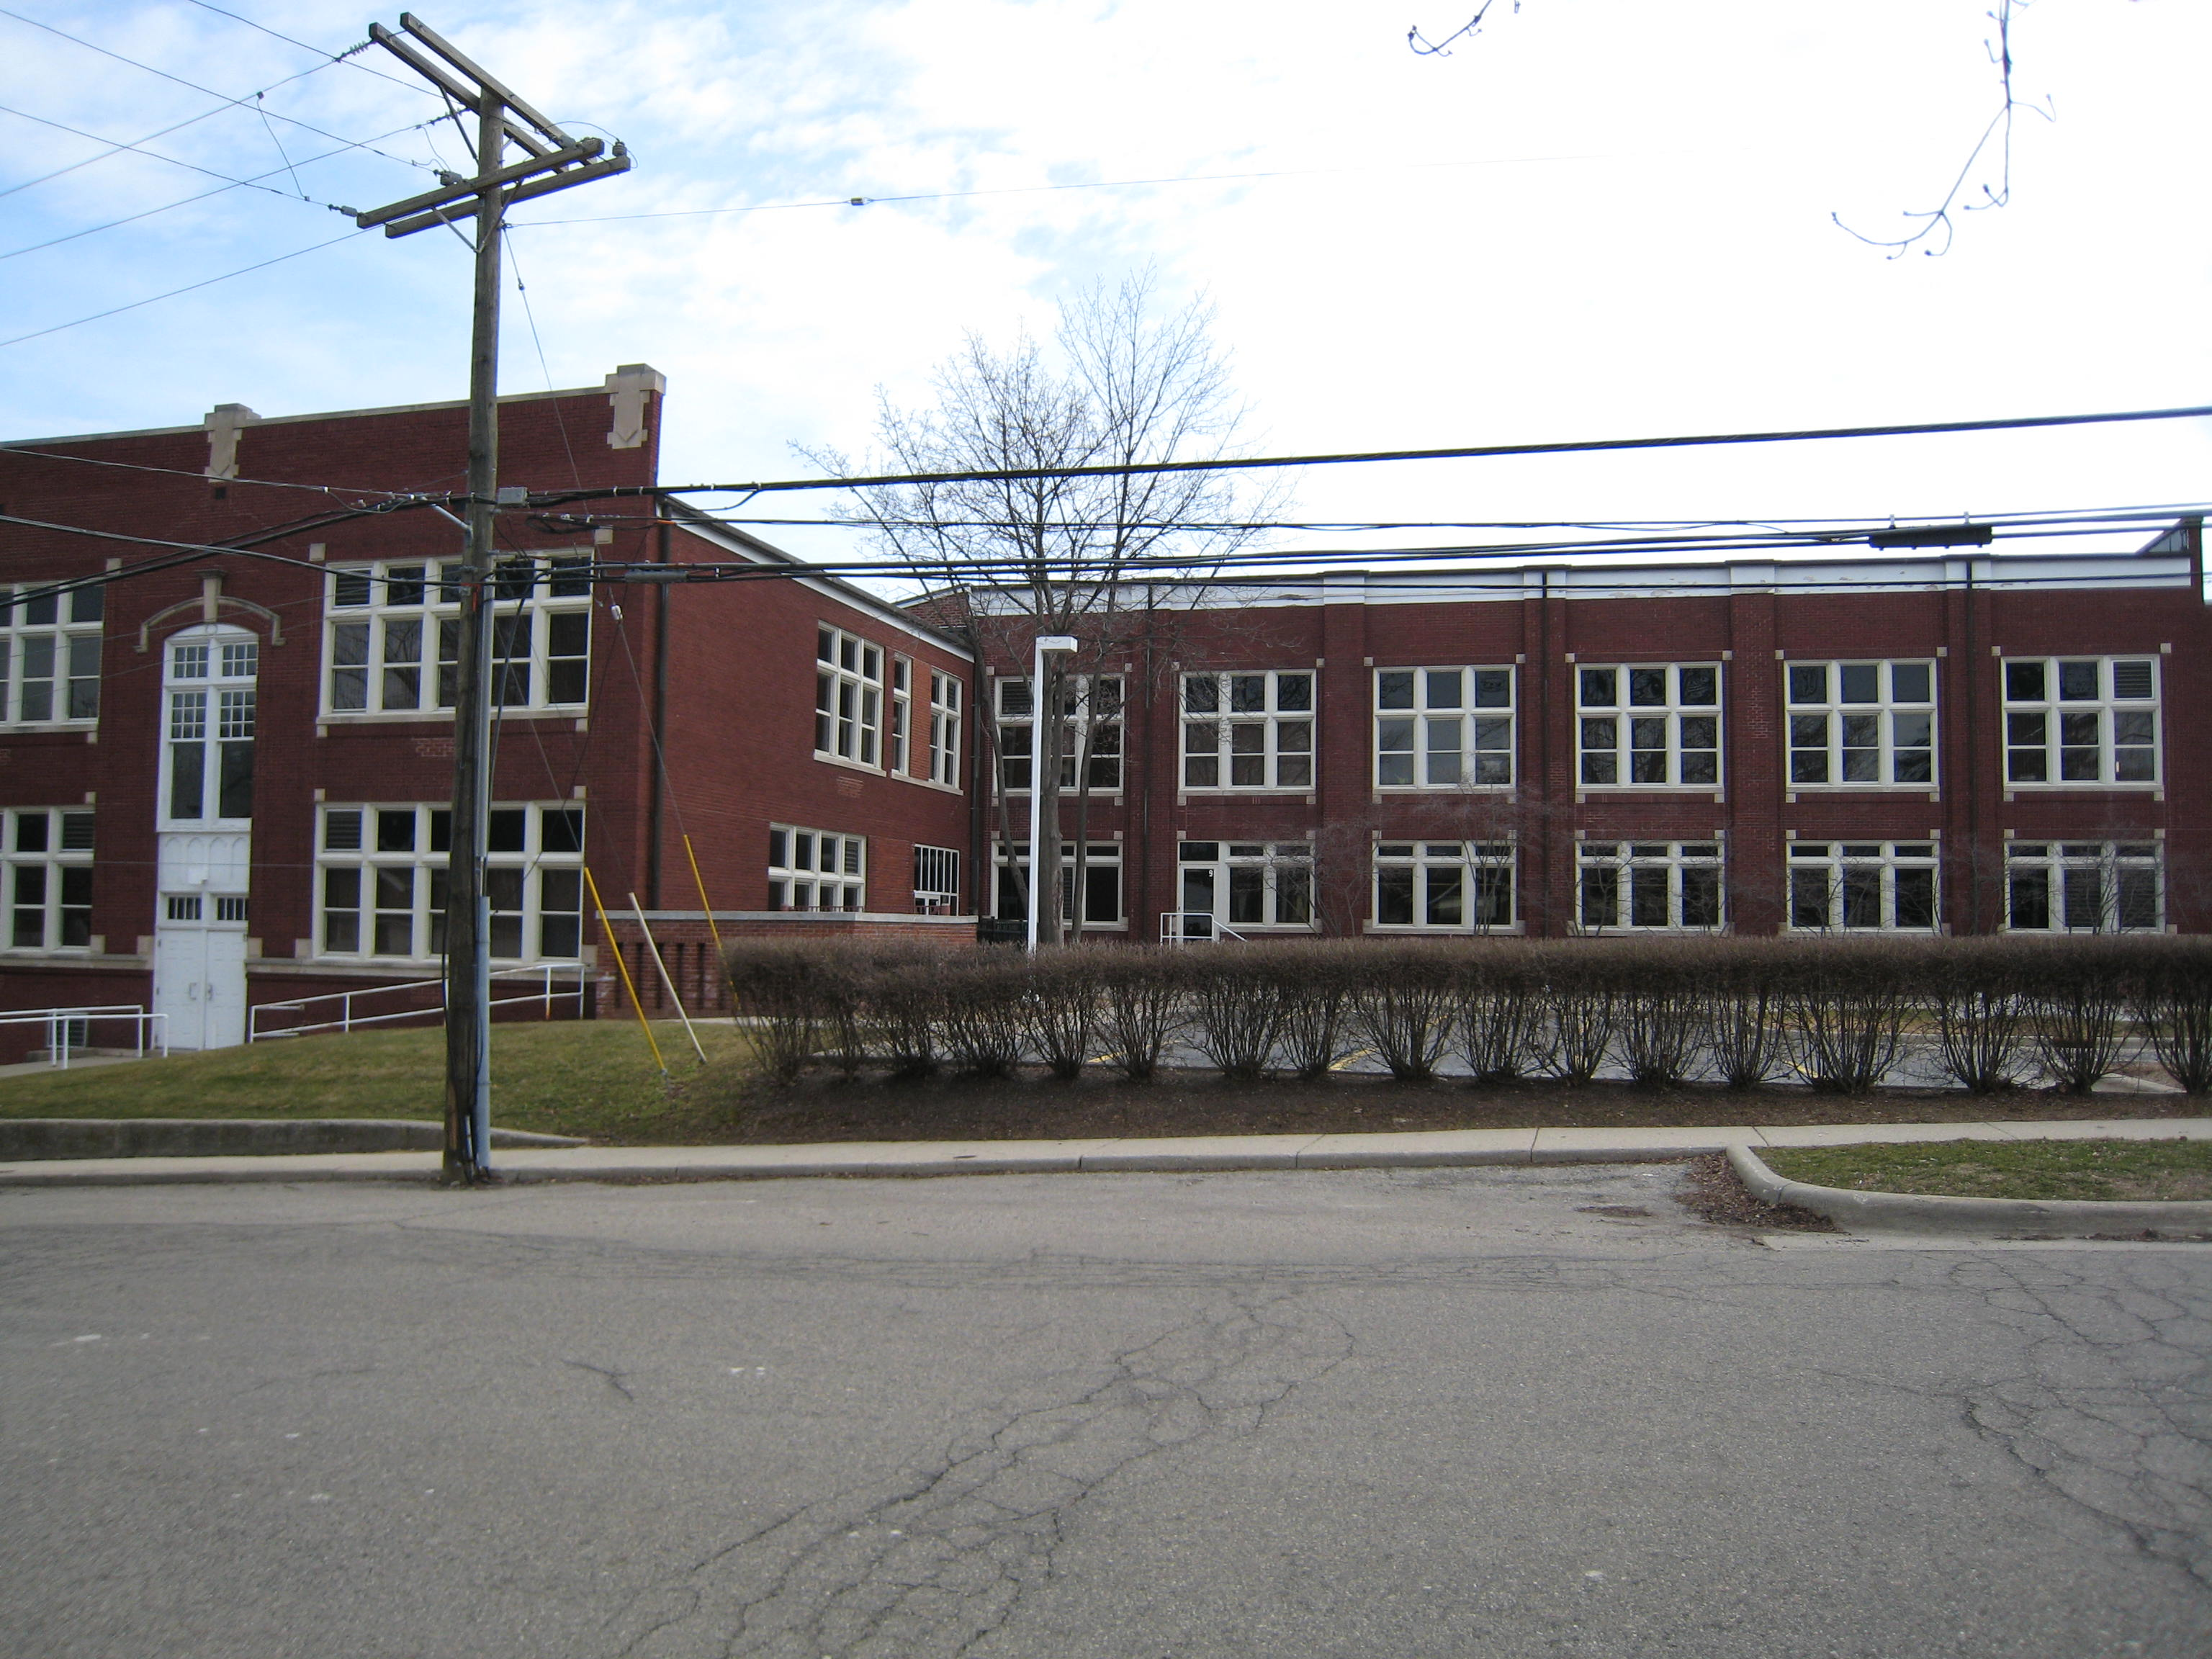 Rochester High School, 1916/1920 building, west elevation, 2011